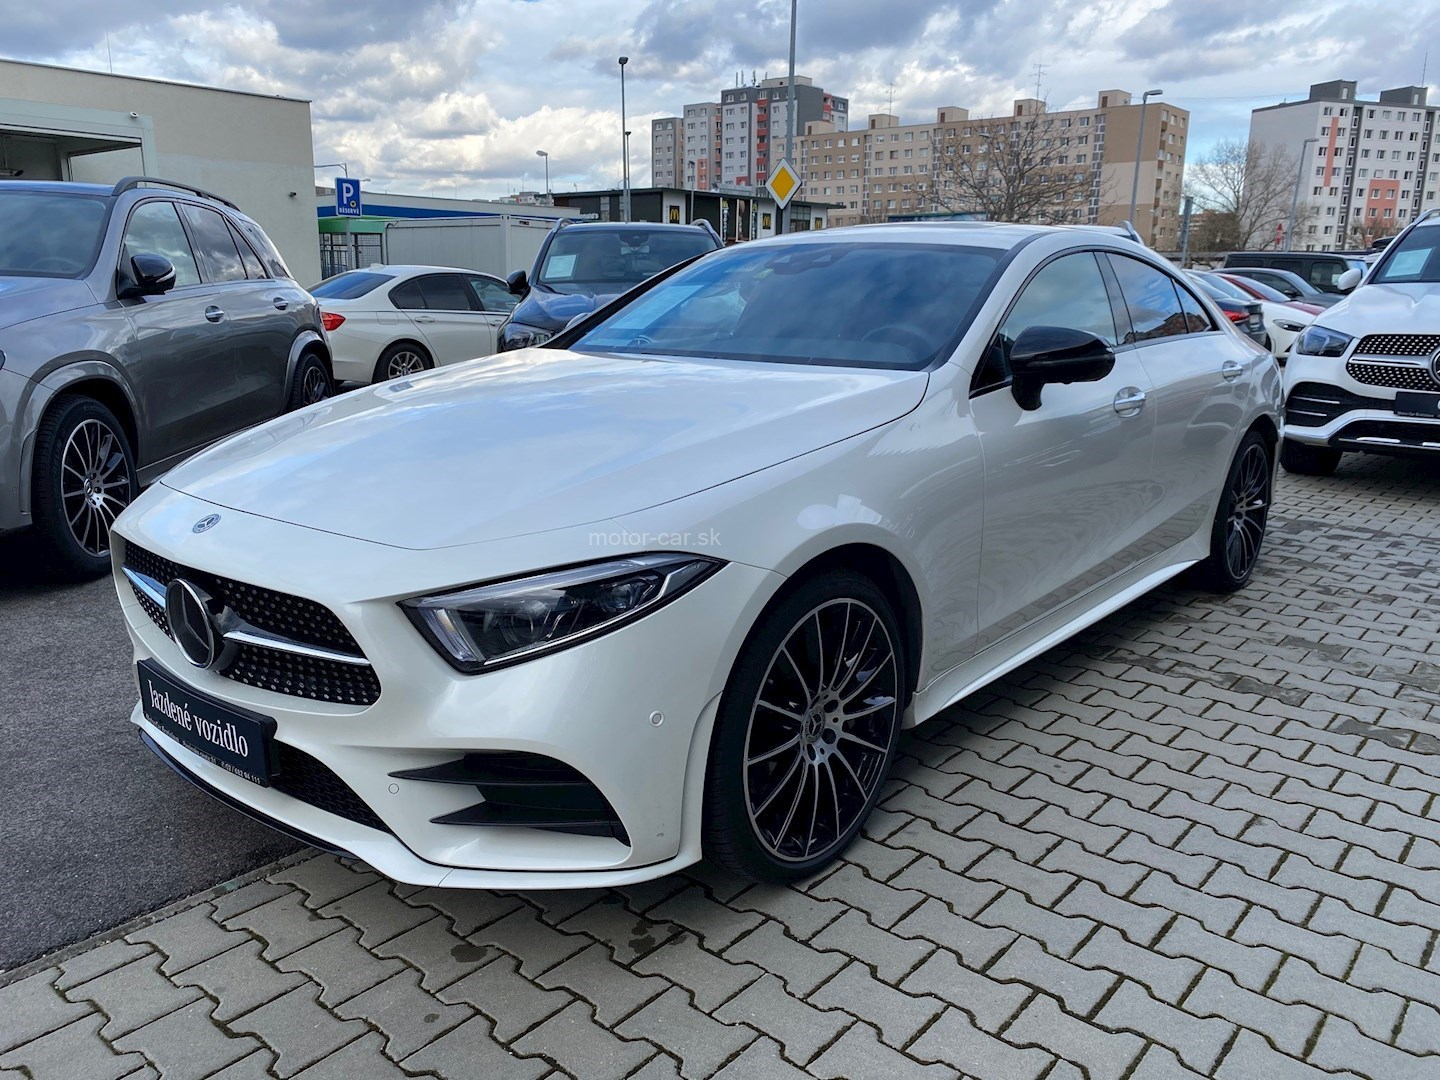 mercedes-benz cls 400 d 4matic